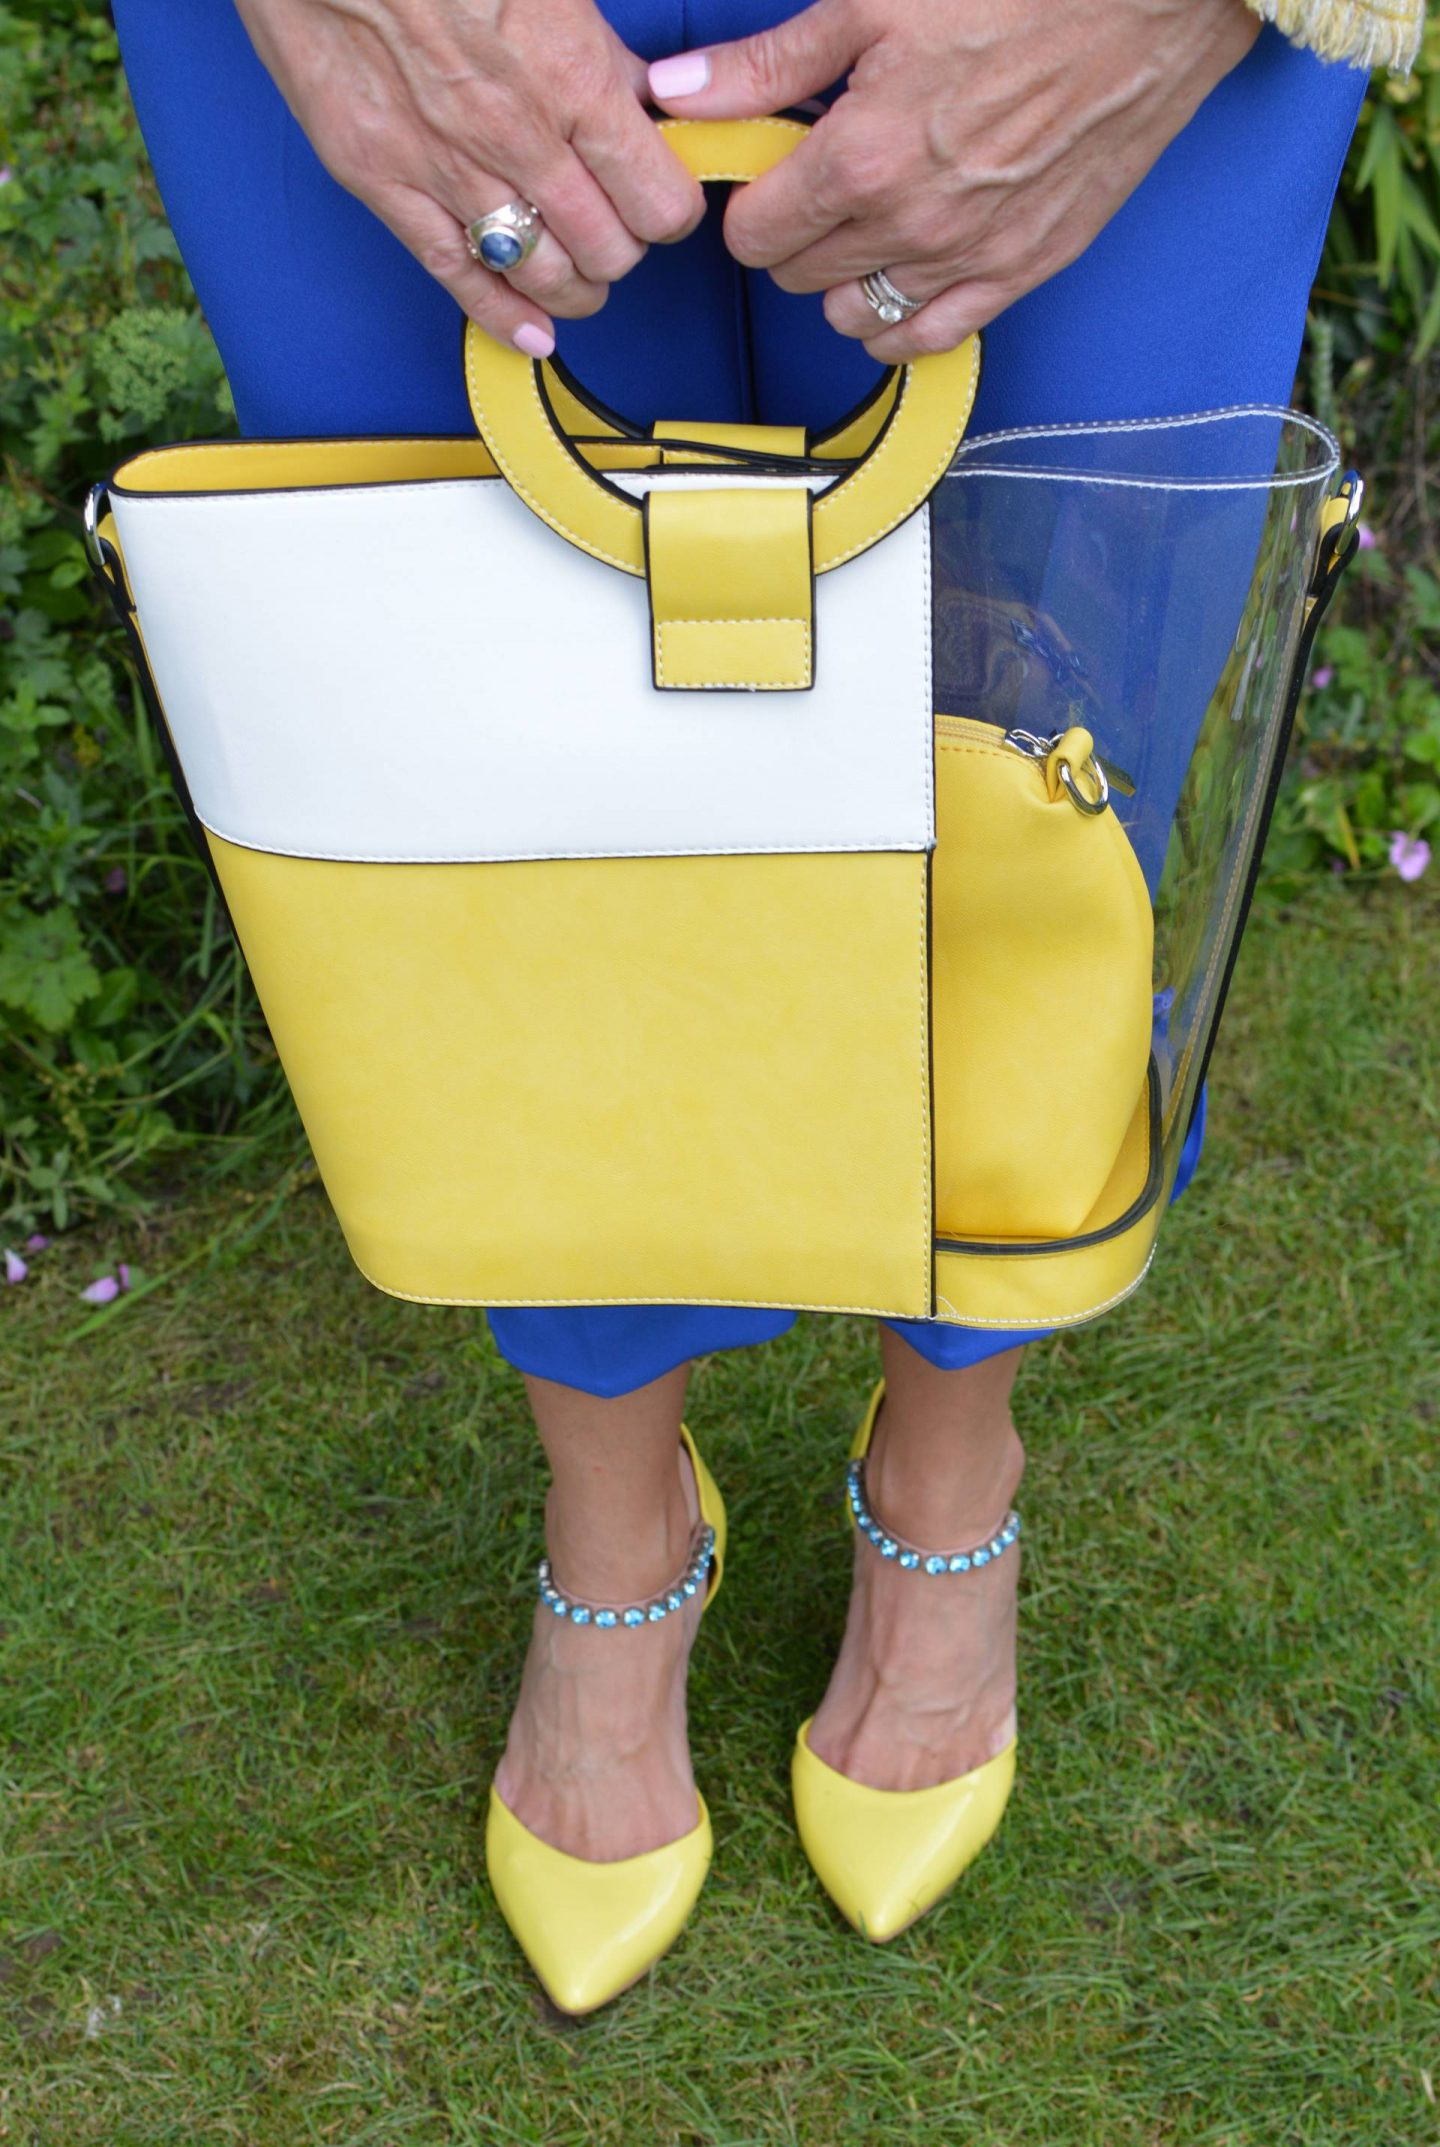 Carvela jewel strap shoes, yellow and white bag